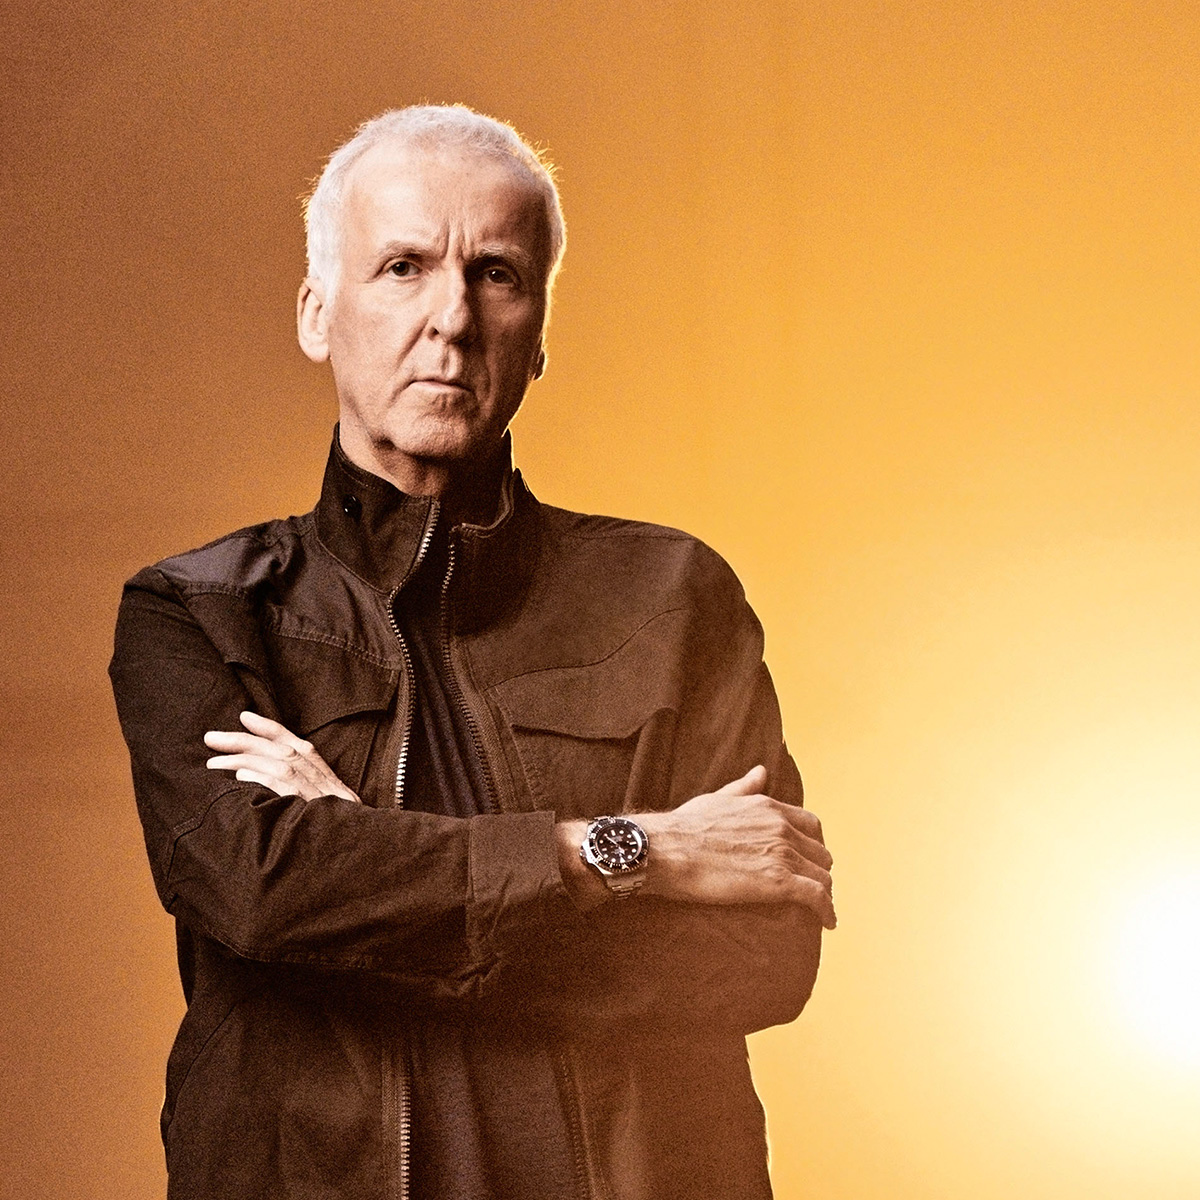 JAMES CAMERON  As director, writer and producer, James Cameron is responsible for some of the most memorable films of the past three decades: The Terminator (1984), Titanic (1997), and Avatar (2009)